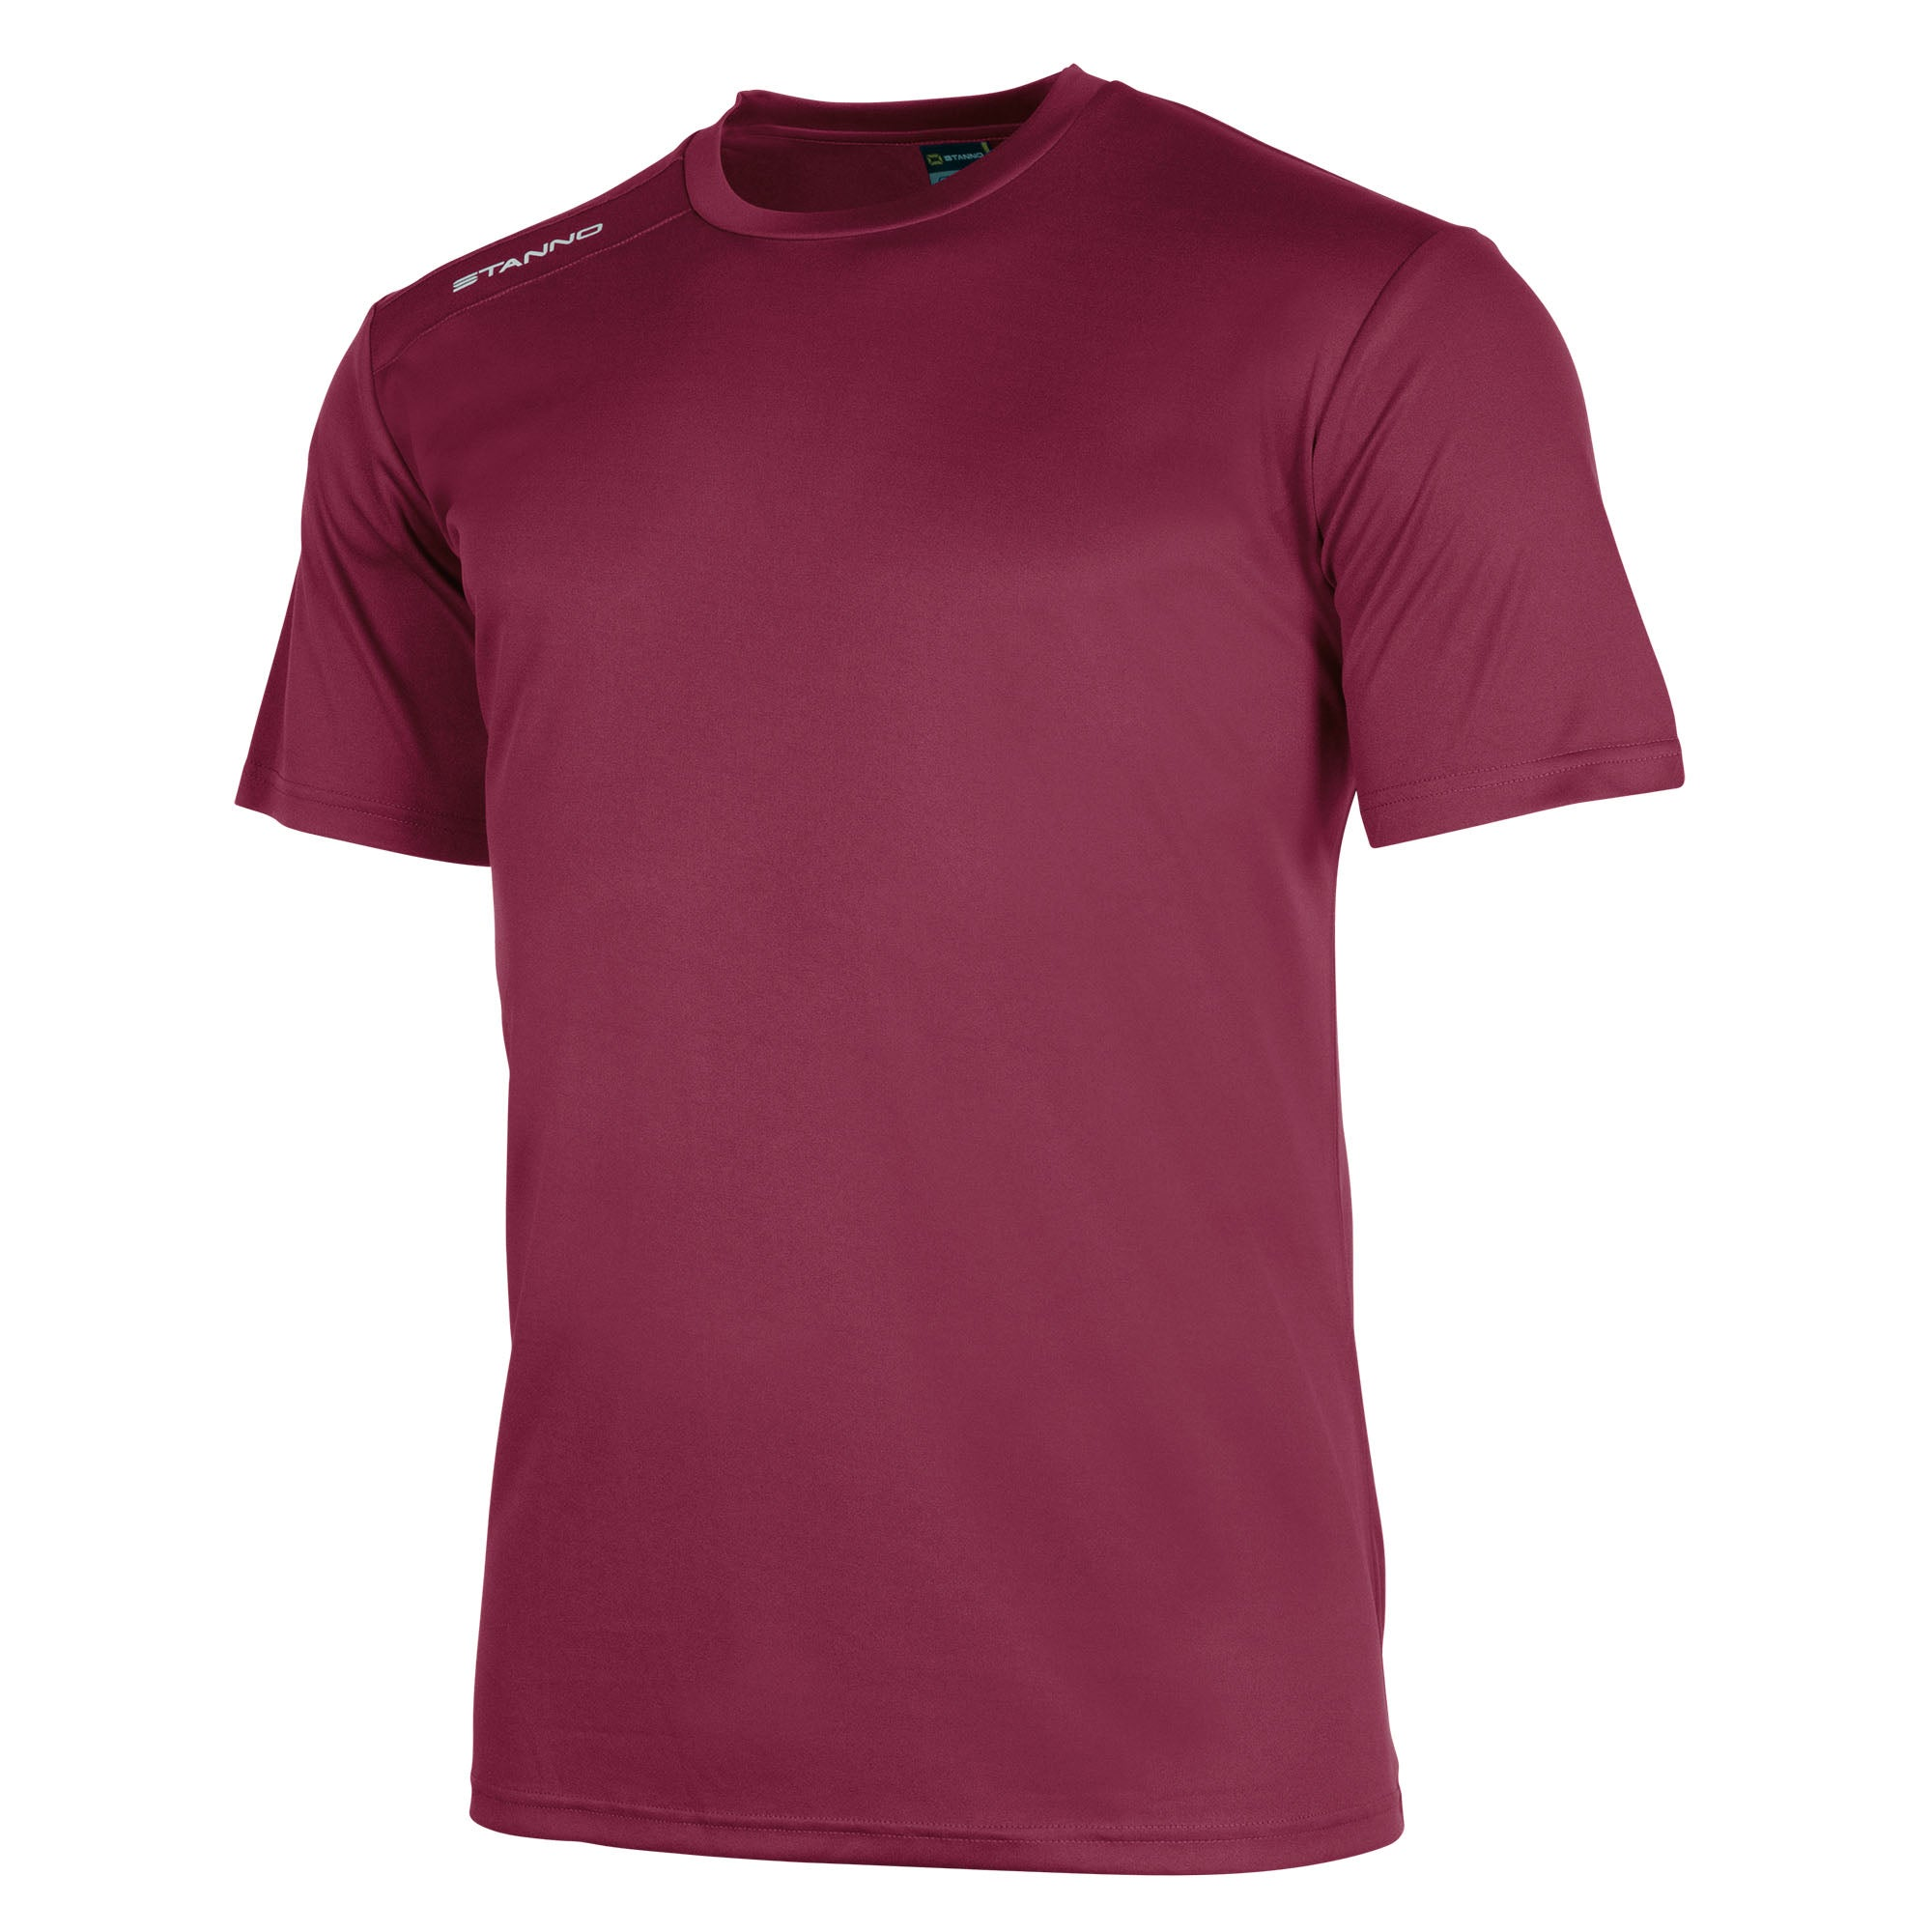 Stanno Field Shirt in maroon short sleeve with white Stanno text logo on right shoulder